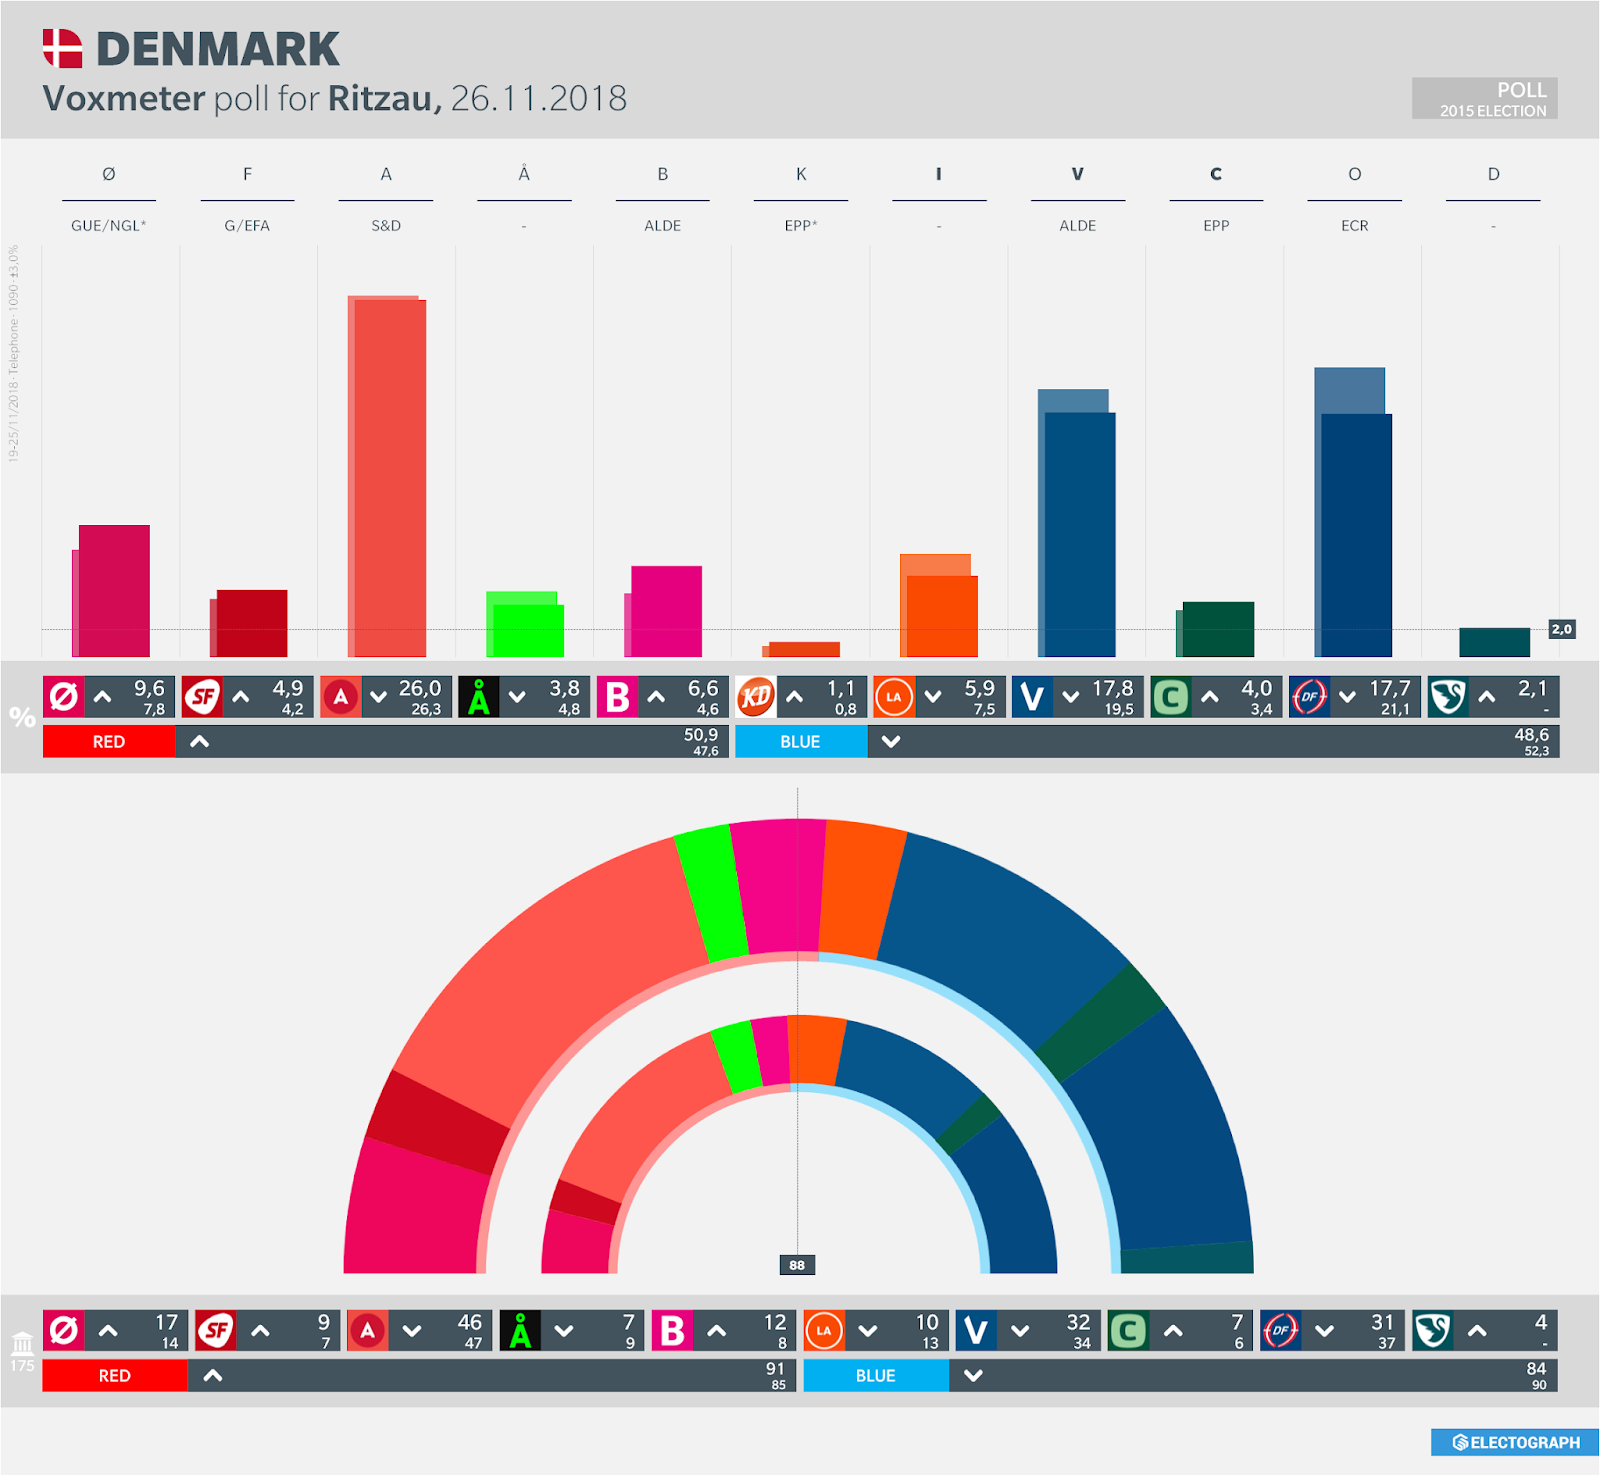 DENMARK: Voxmeter poll chart for Ritzau, 26 November 2018